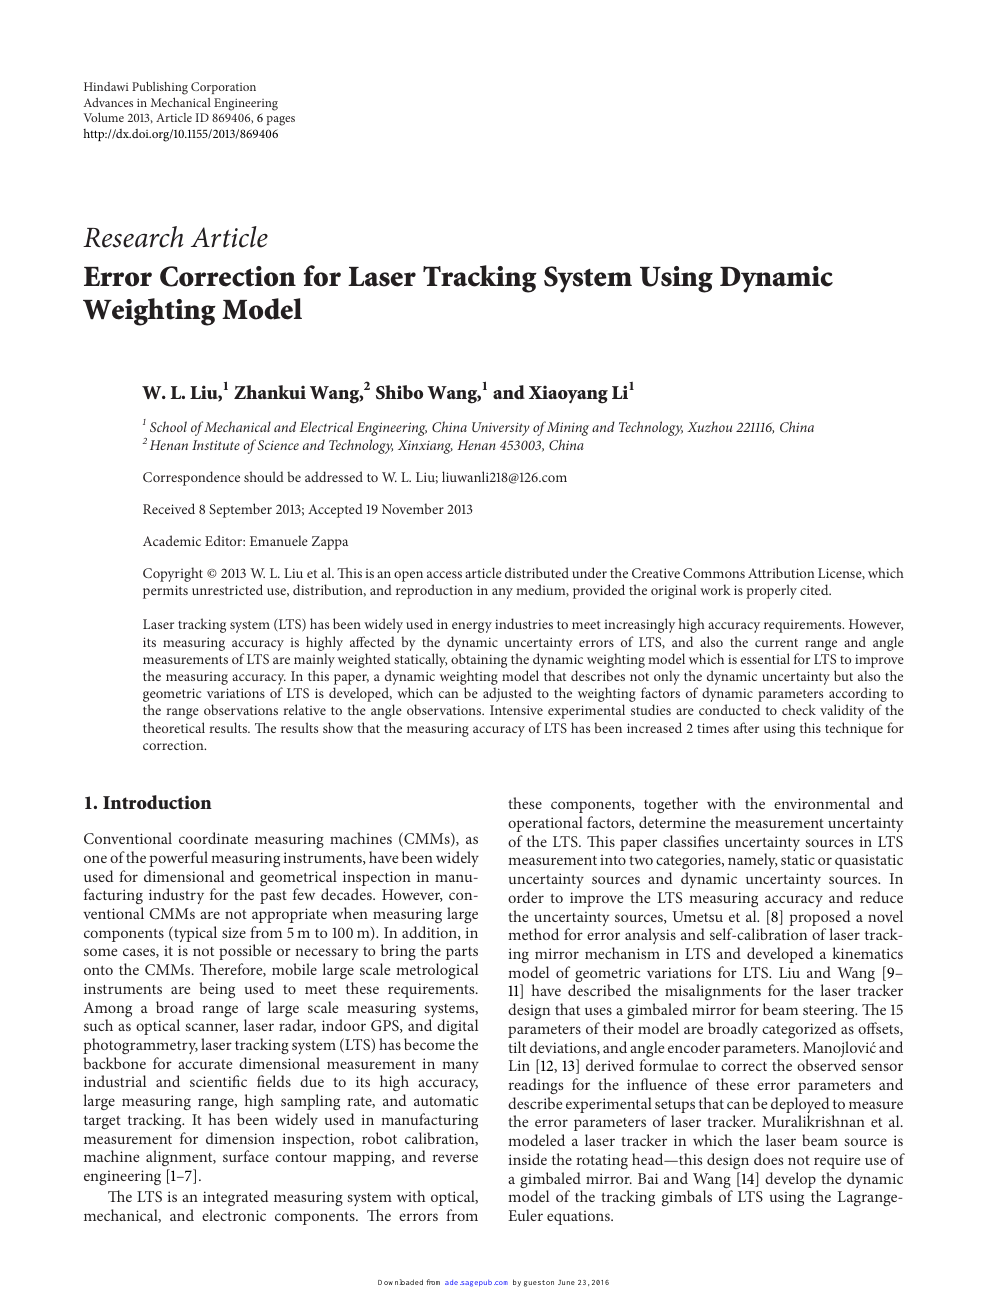 Error Correction for Laser Tracking System Using Dynamic